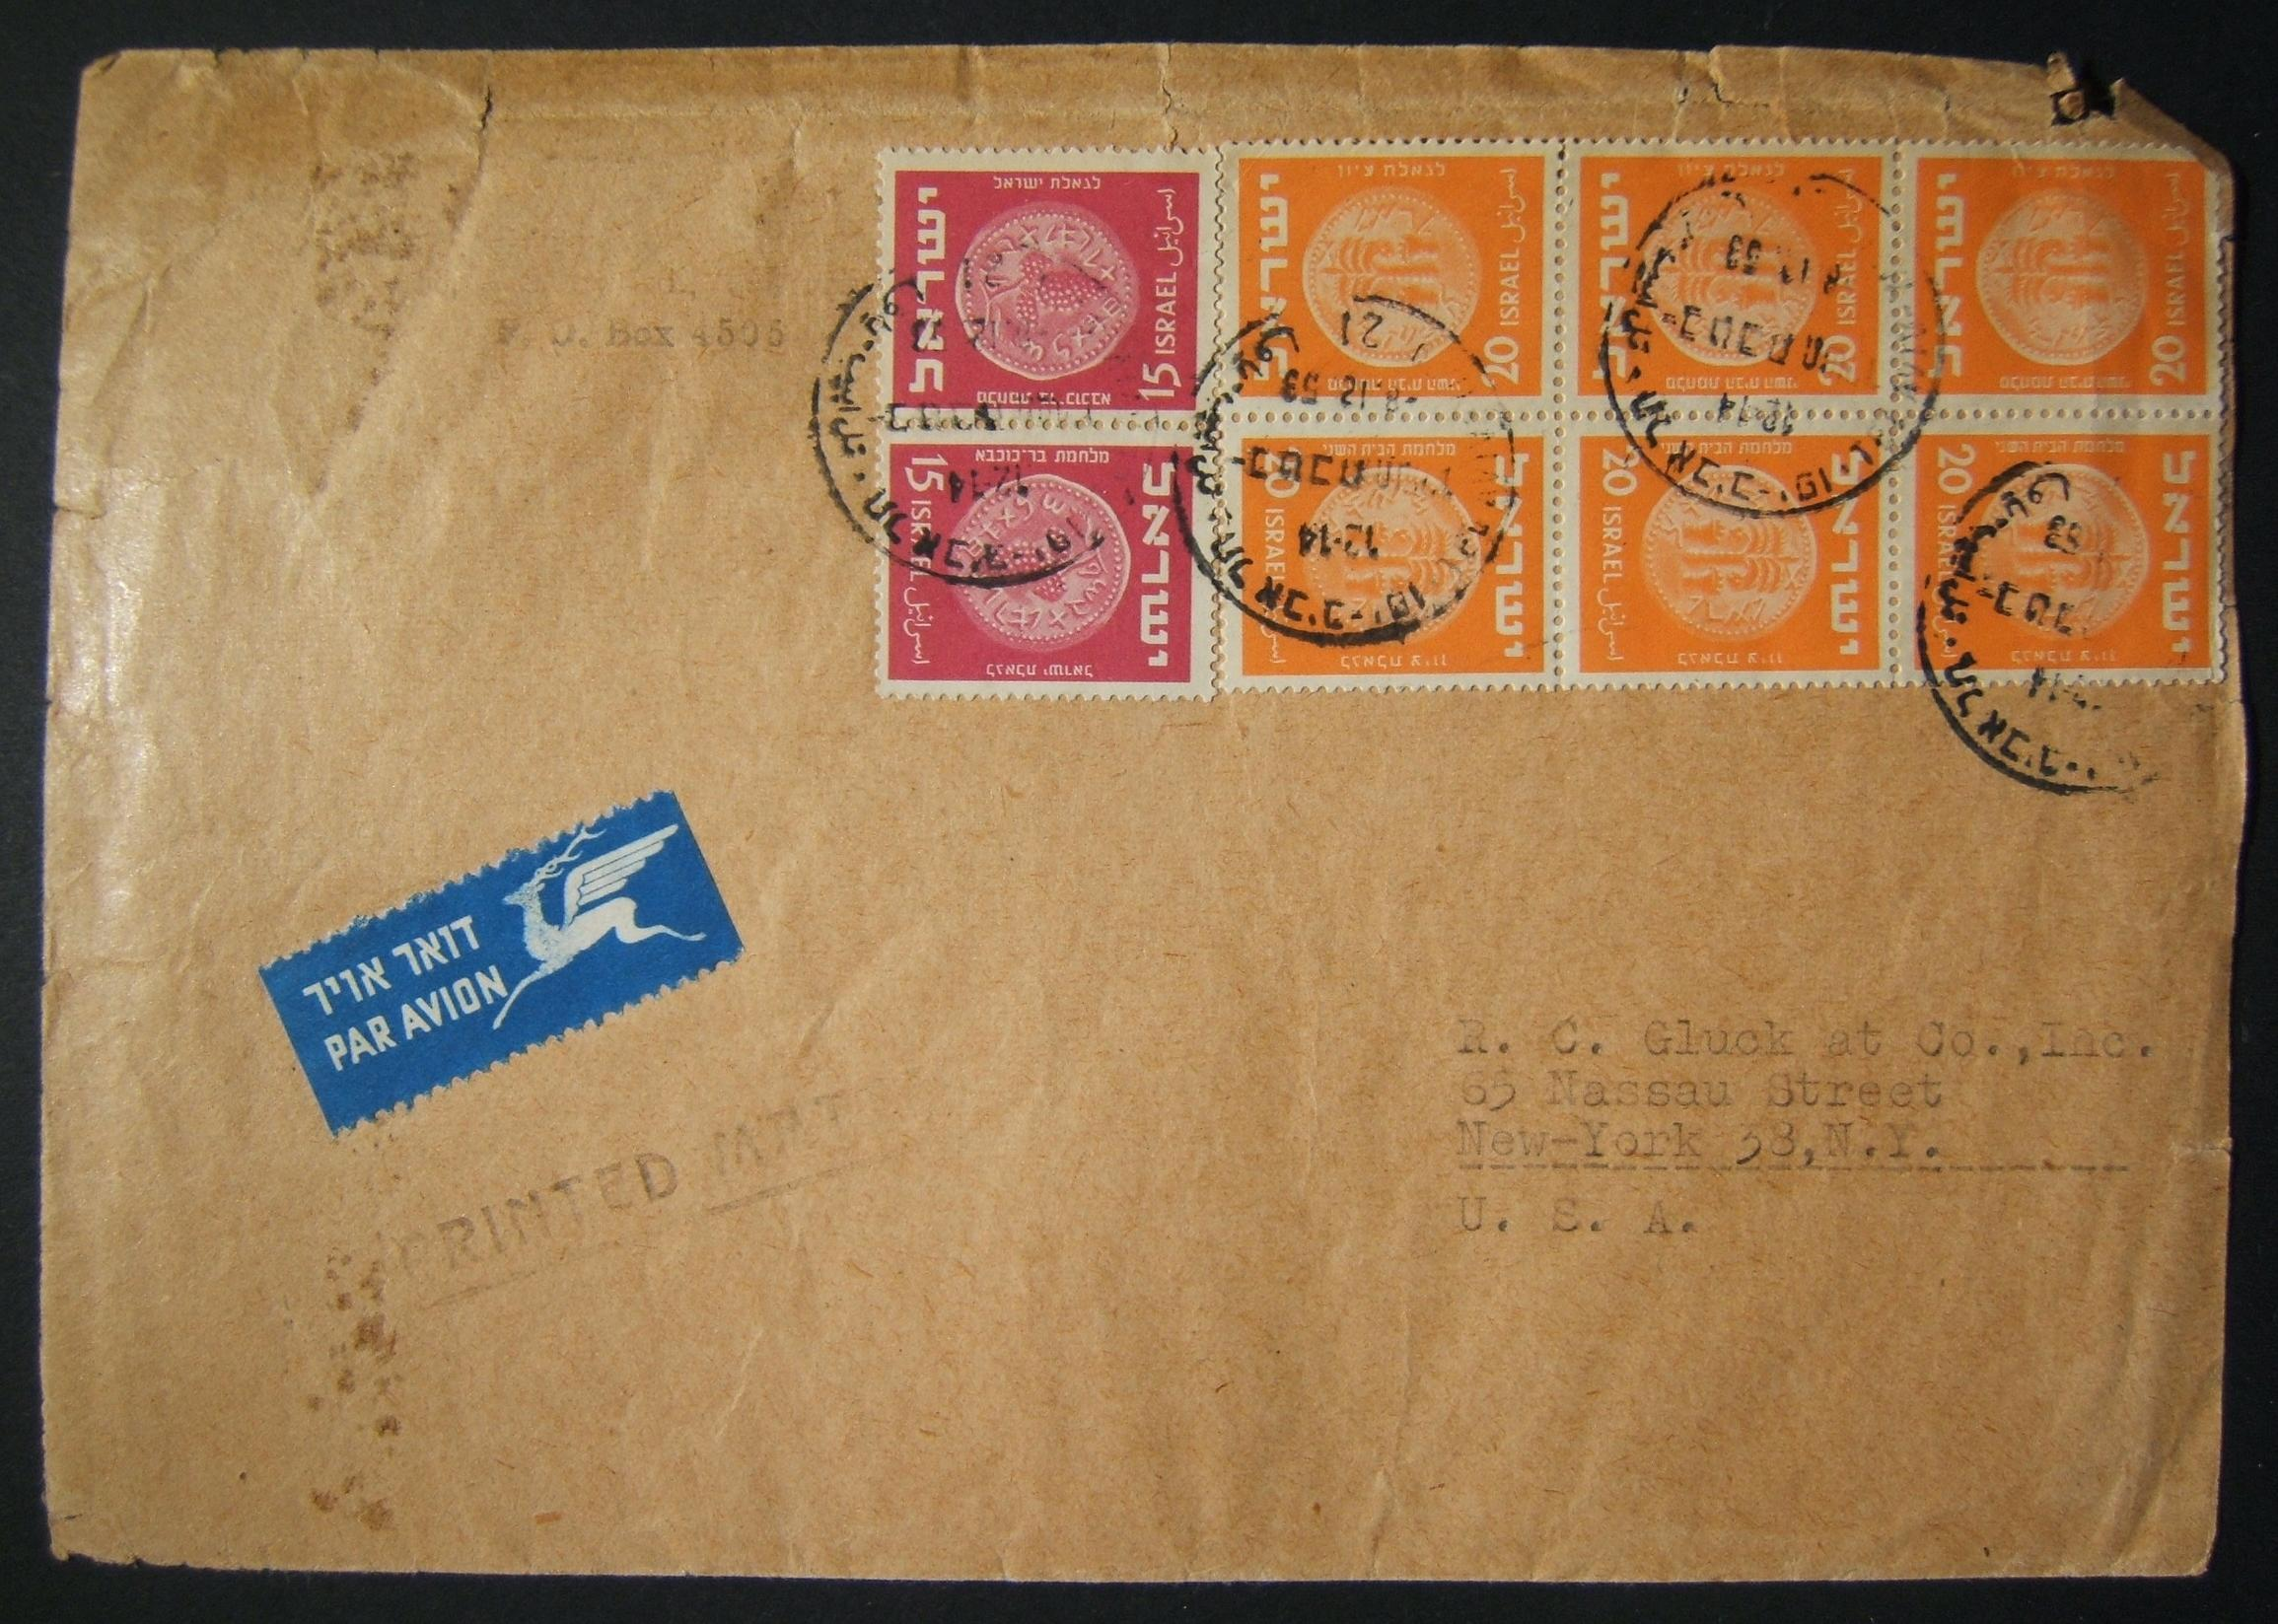 12/1953 printed matter airmail to US using 3x 20pr 3rd Coinage vertical tete-beche stamp pairs